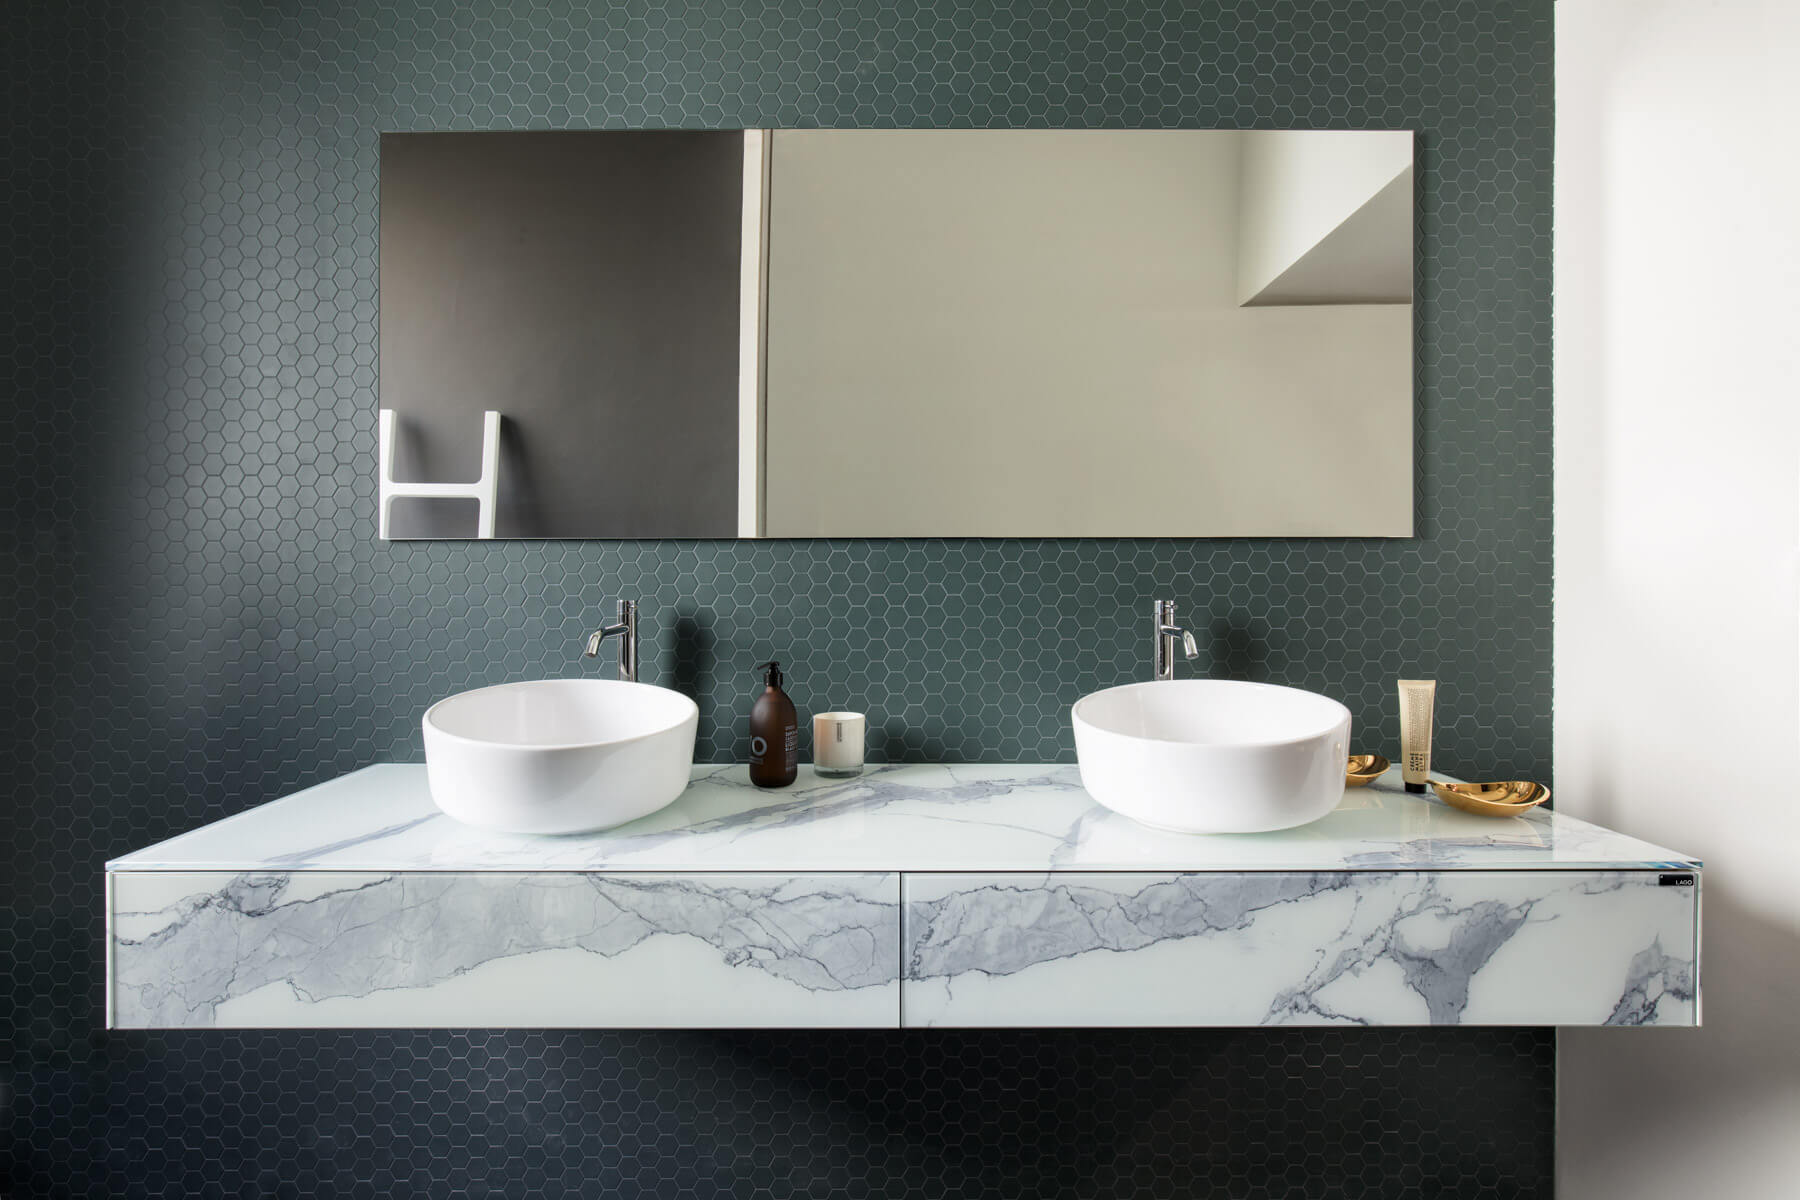 inbilico_basin_bathroom